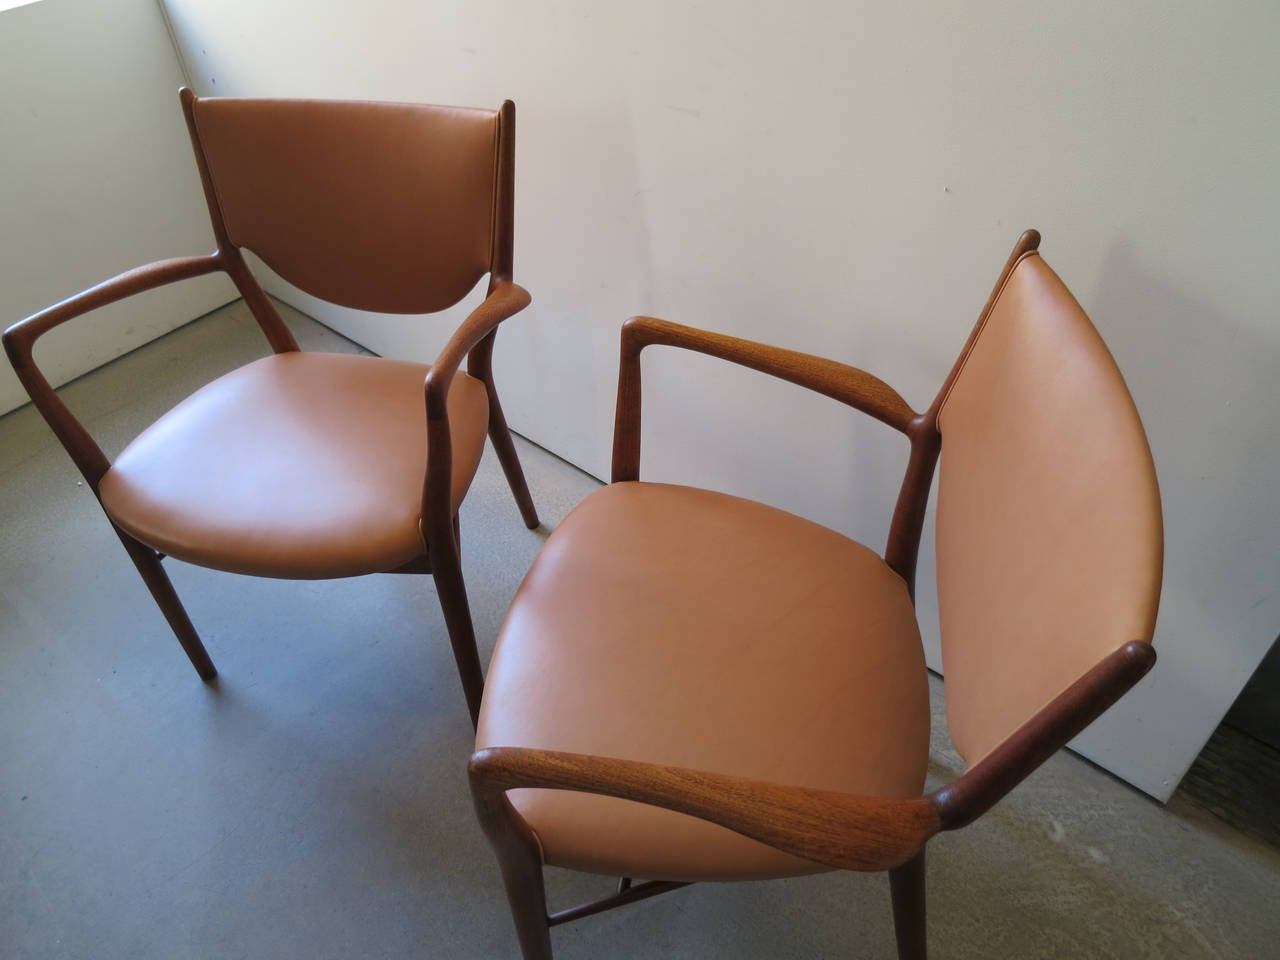 Pair of NV46 Chairs by Finn Juhl in Teak with Natural Leather Upholstery.